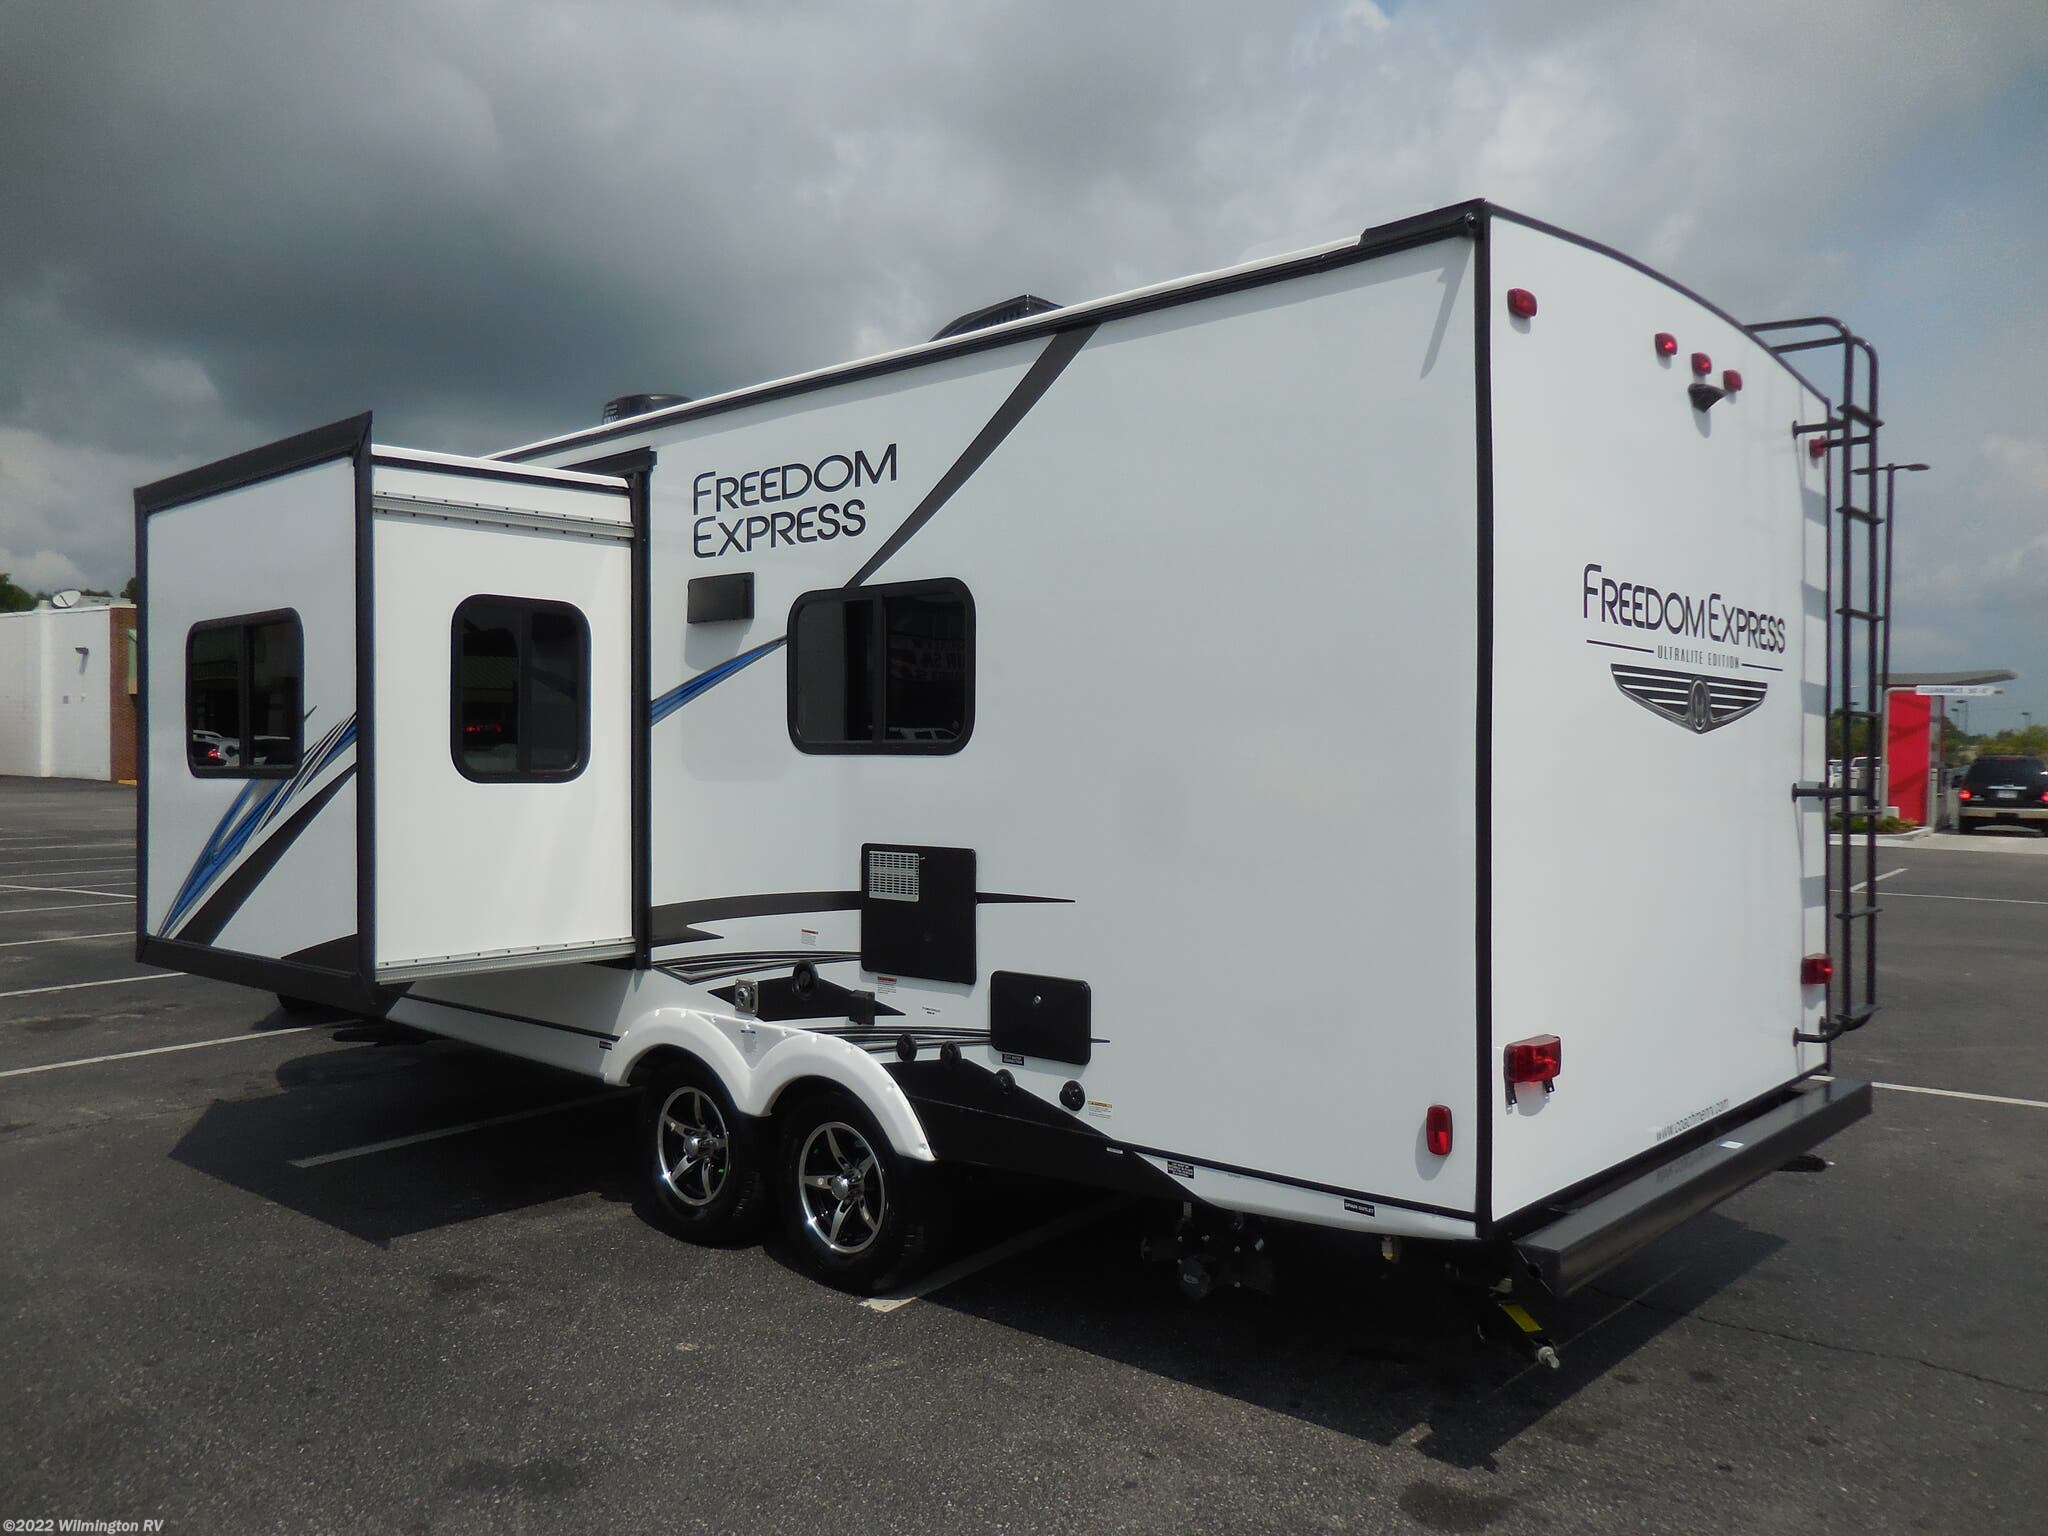 2020 Coachmen RV Freedom Express Ultra Lite 195 RBS for Sale in Wilmington,  NC 28412 | 0321